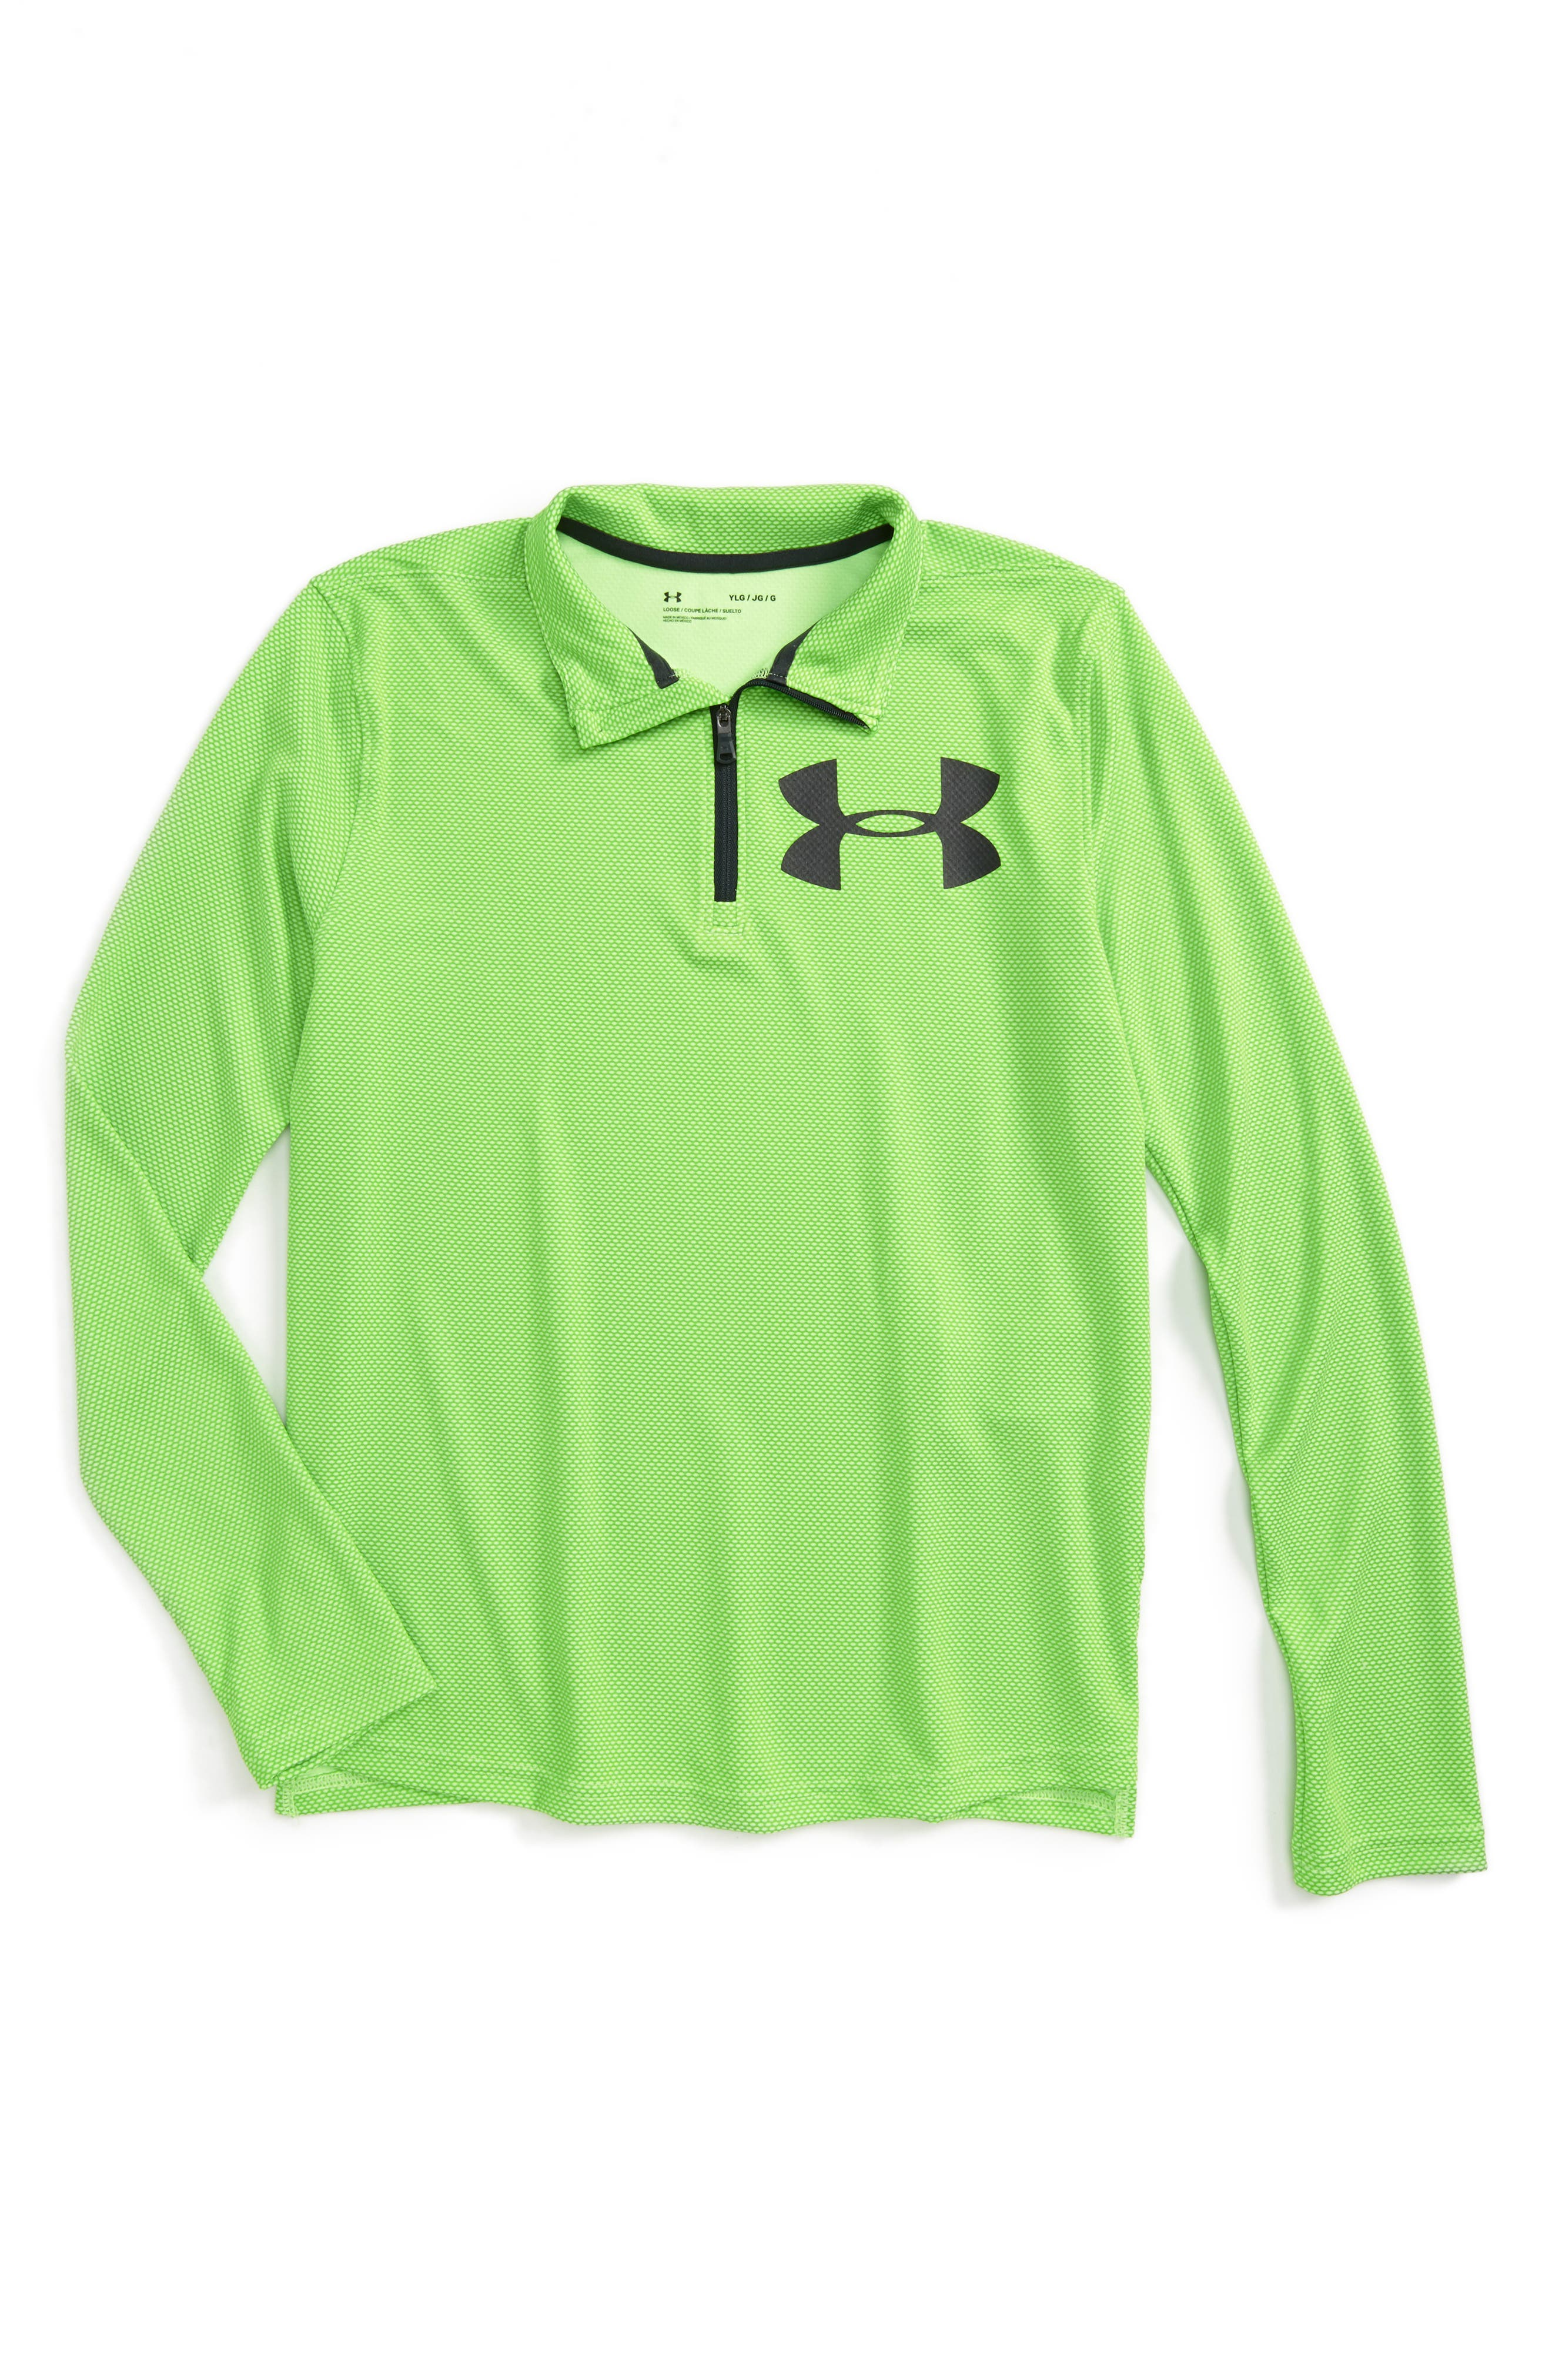 Textured Quarter Zip Top,                             Main thumbnail 1, color,                             Quirky Lime/ Anthracite